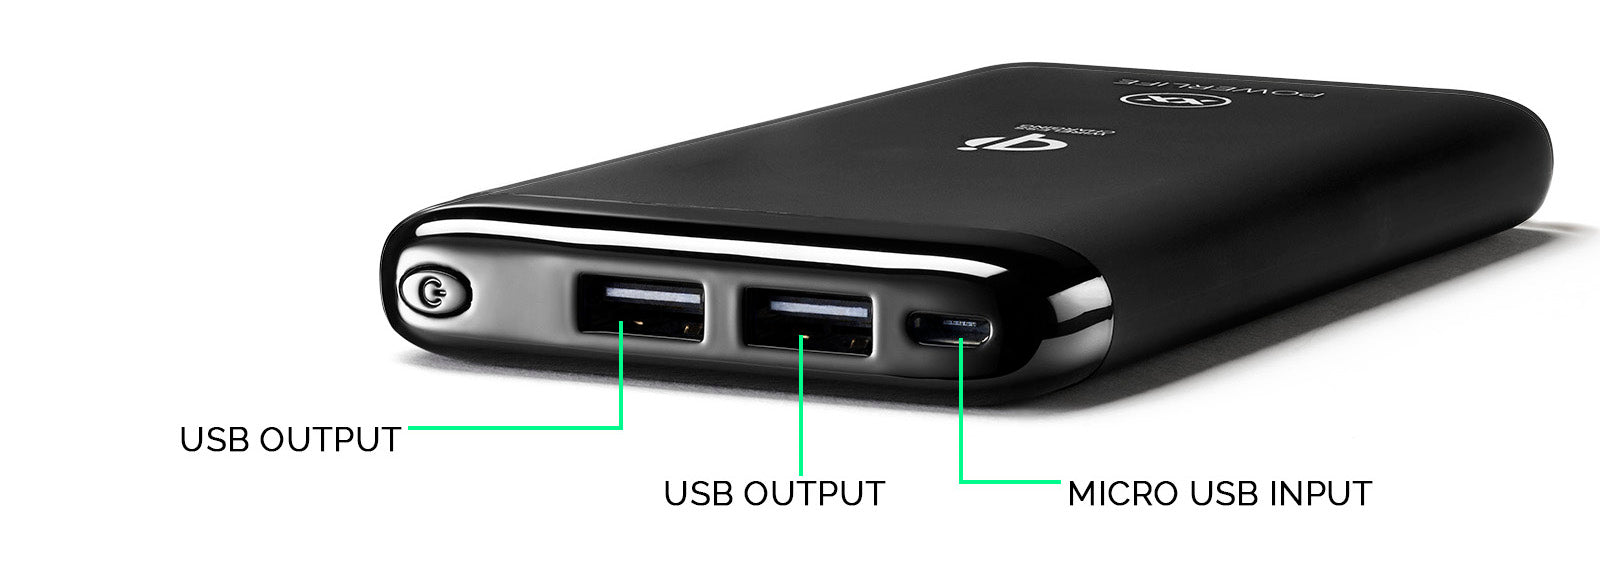 Qi5 wireless power bank ports